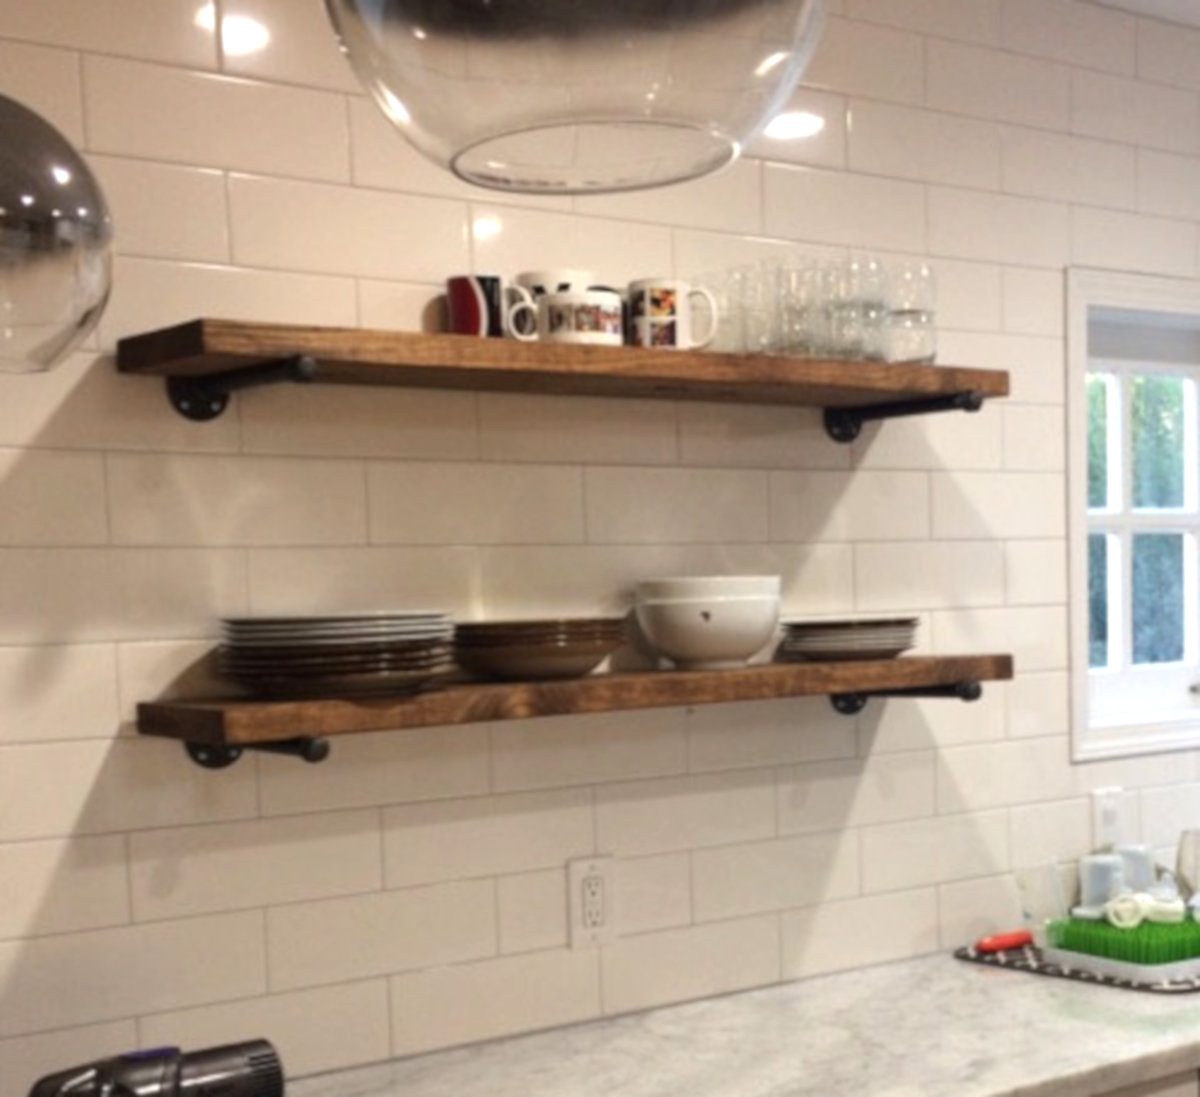 extra long deep rustic farmhouse floating shelves etsy fullxfull cths for kitchen storage media cabinet foot coat rack bathroom above toilet canadian tire london ontario baseball